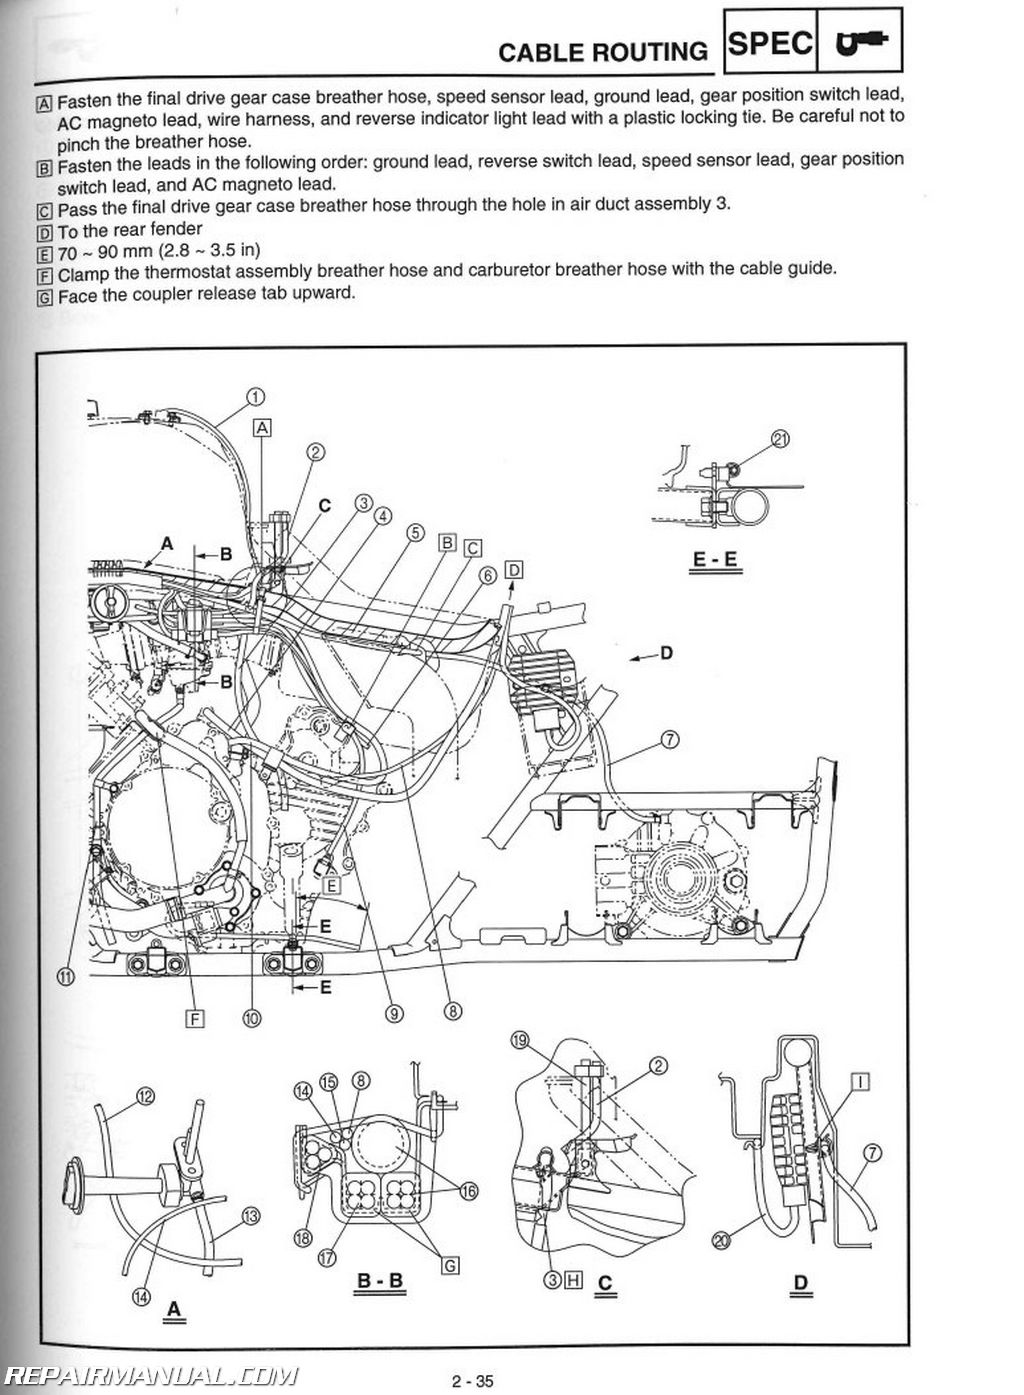 grizzly 700 snorkel instructions